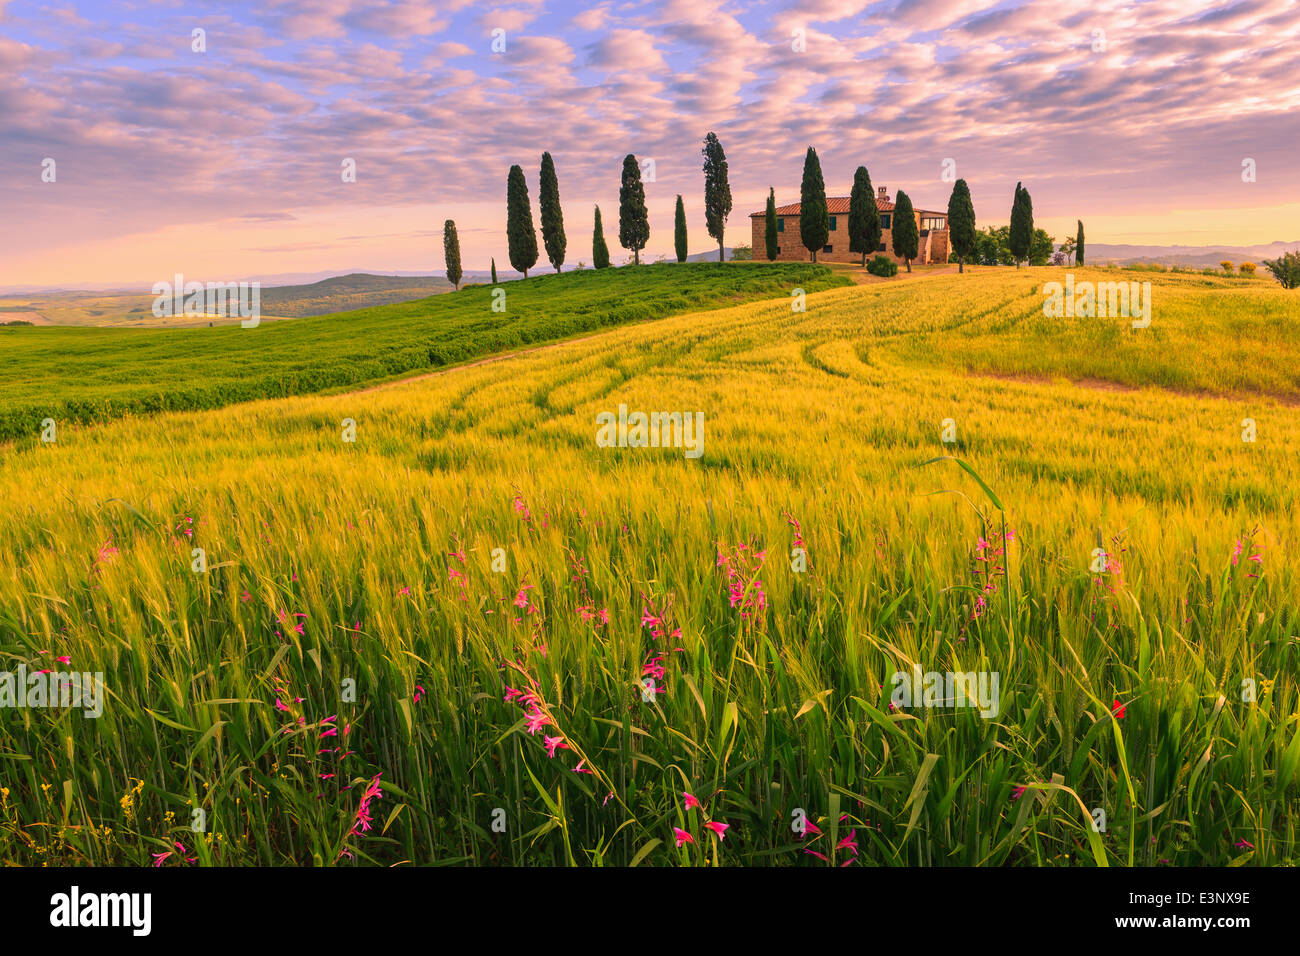 Podere I Cipressini with the famous Cypress trees in the heart of the Tuscany, near Pienza, Italy - Stock Image